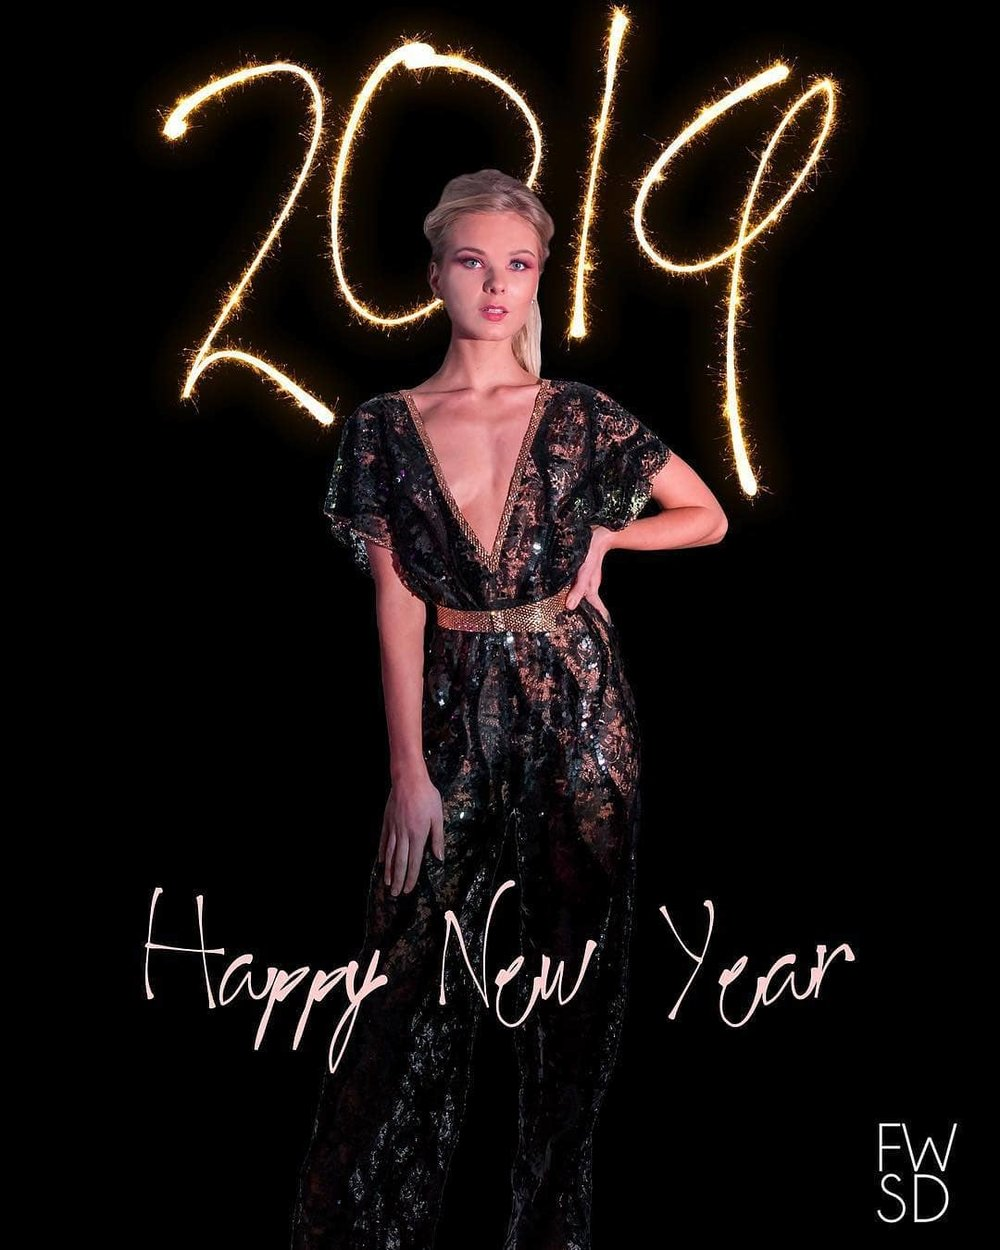 PHOTO_HAPPY NEW YEAR 2019.jpg